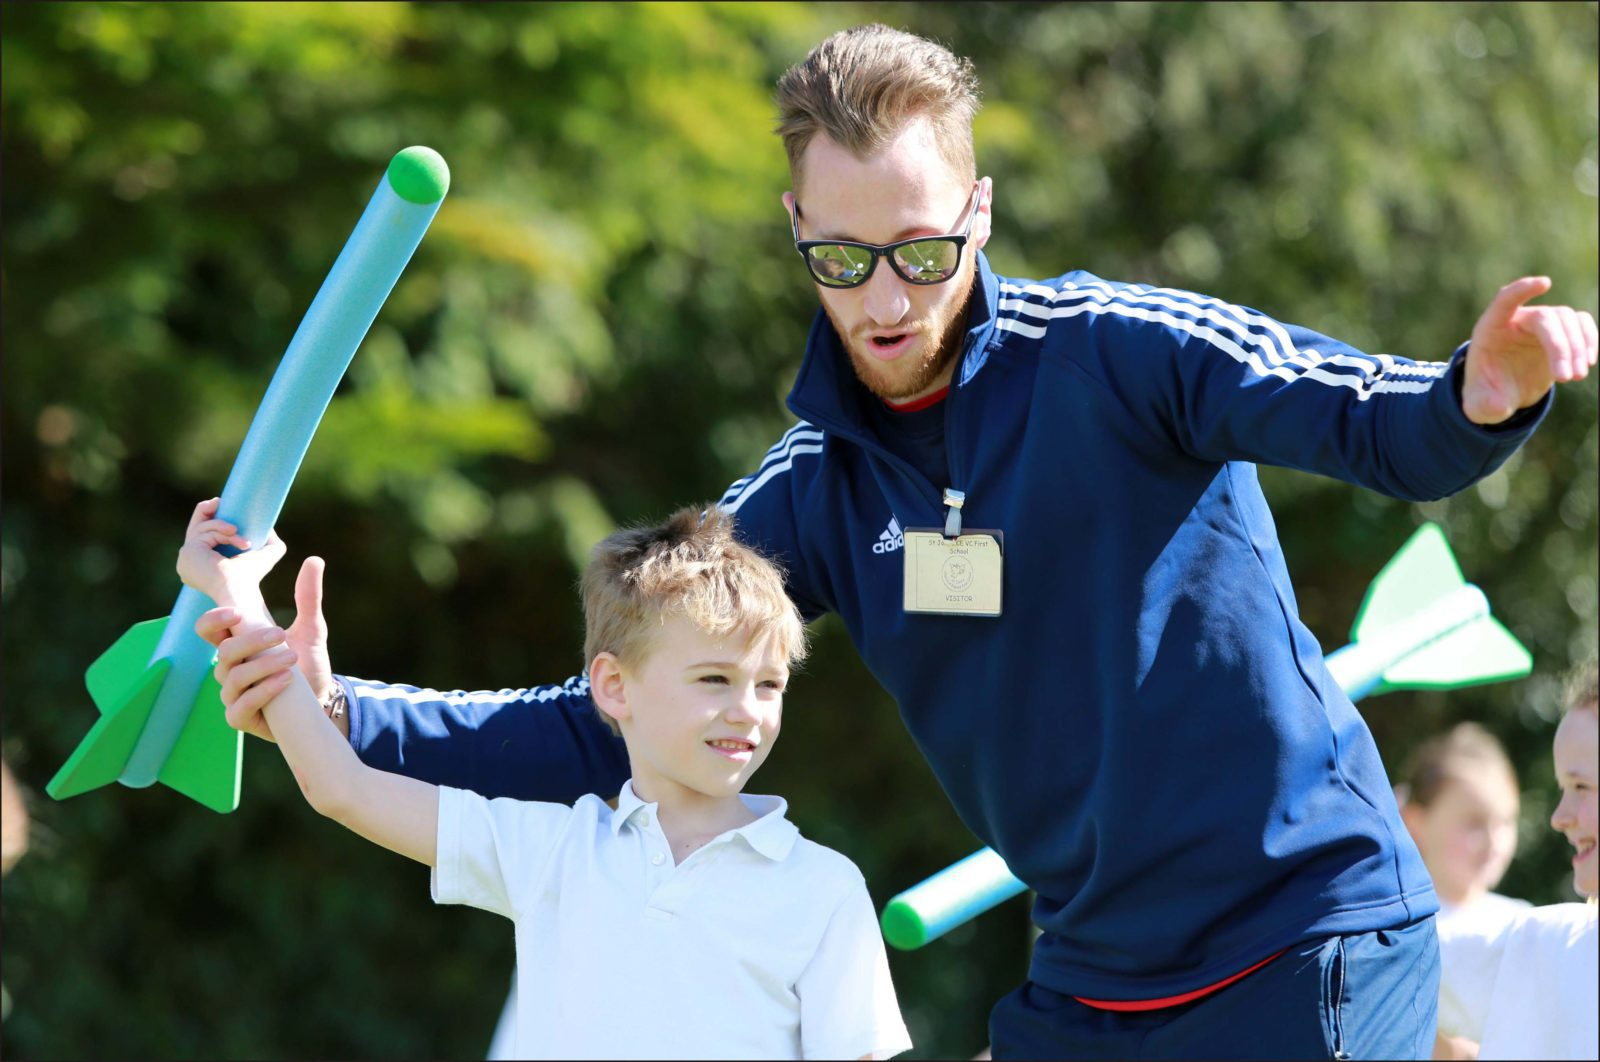 Gareth Hopkins was a guest at St John's C of E First School in Wimborne where he put the pupils through their paces.